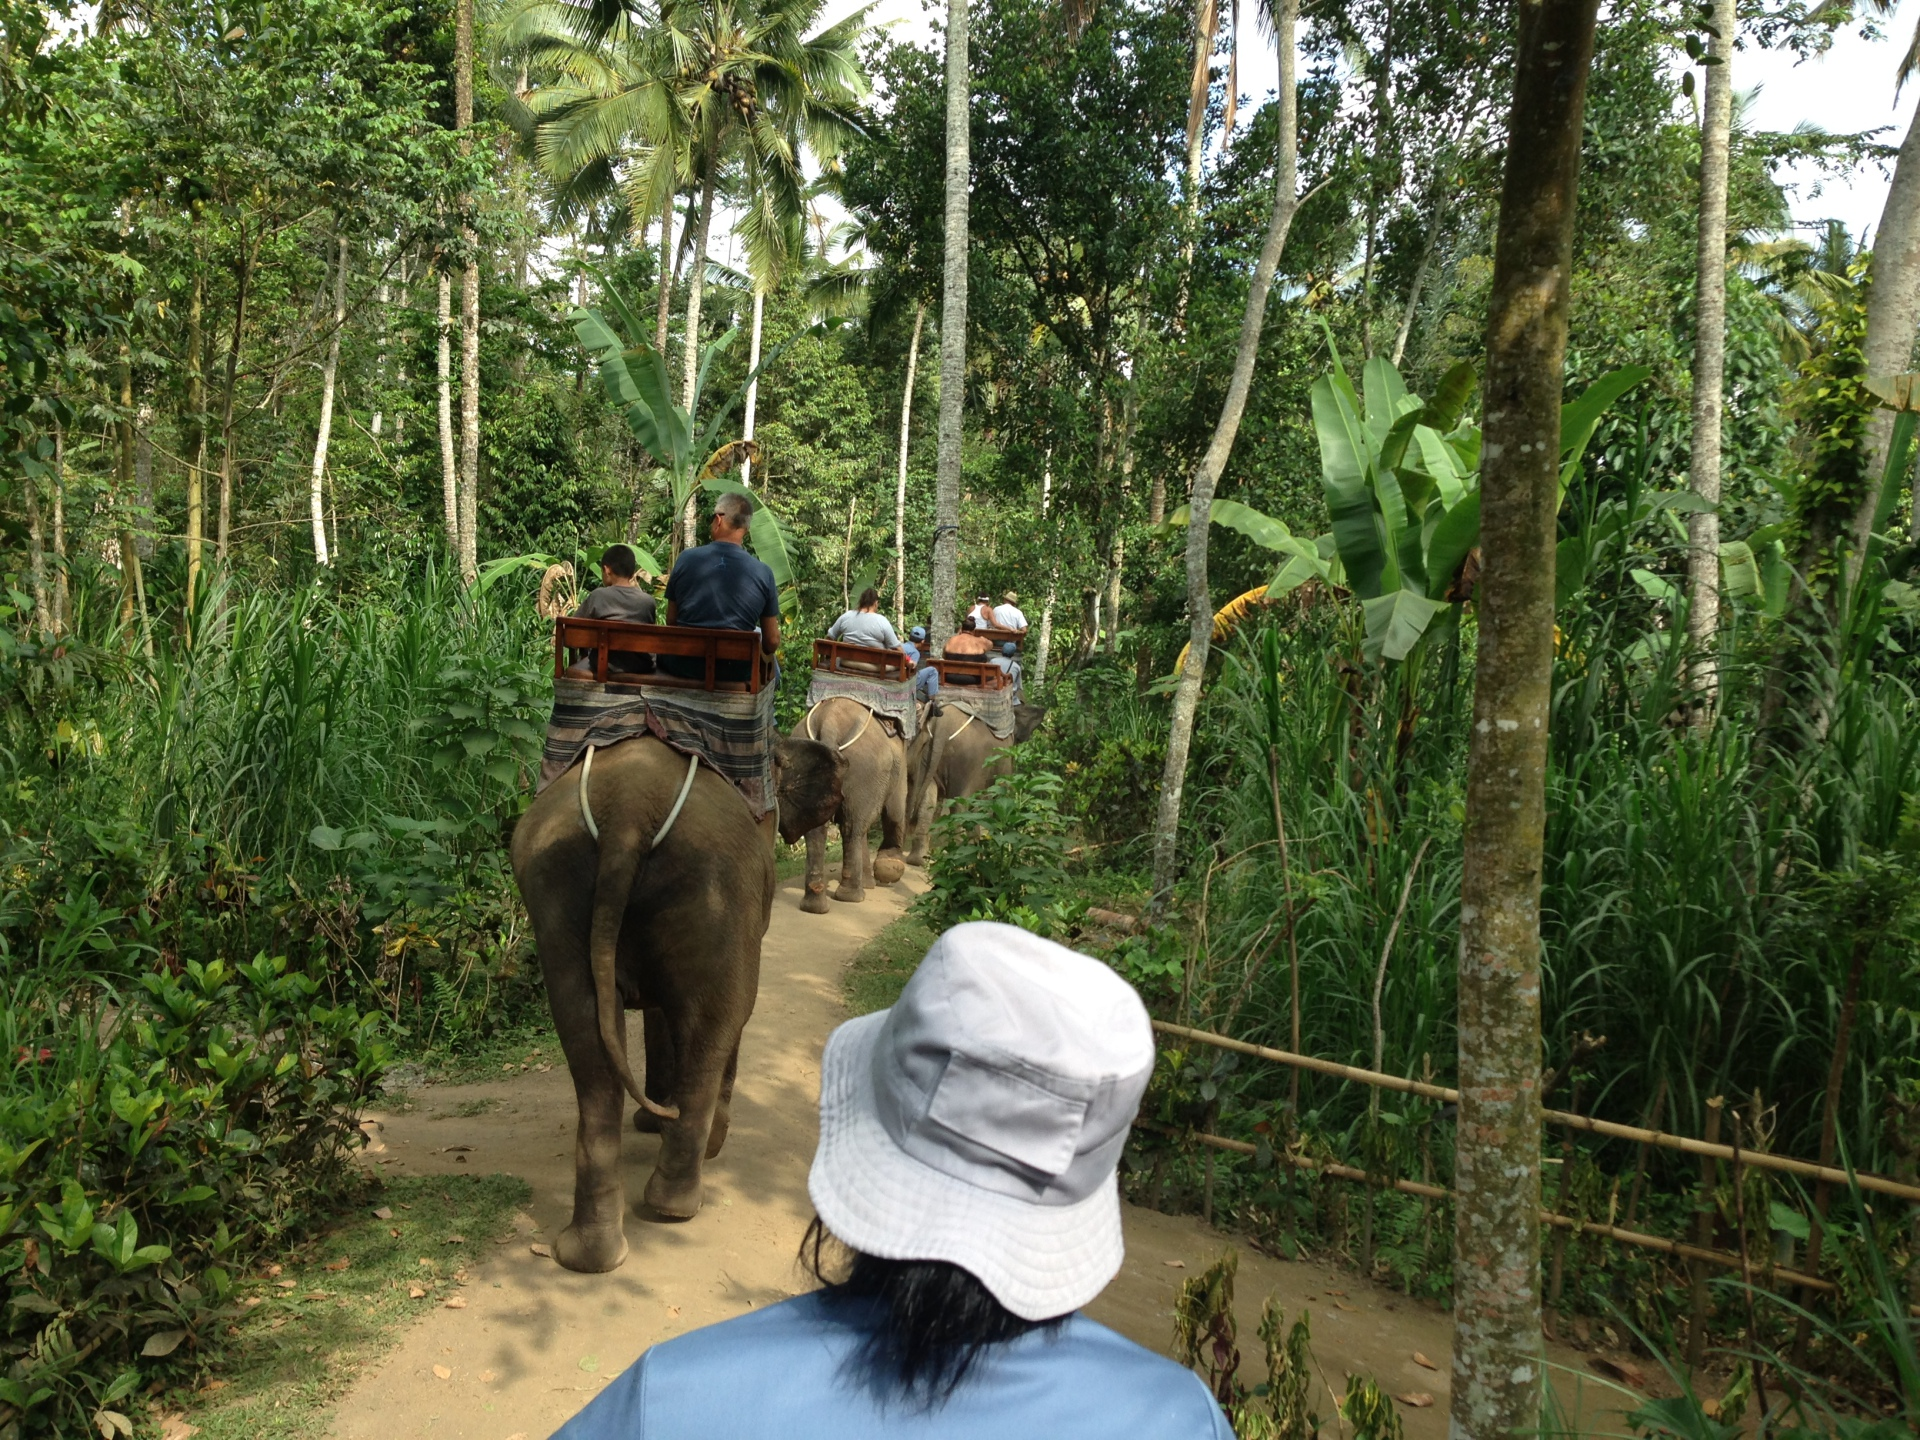 Ride an elephant!